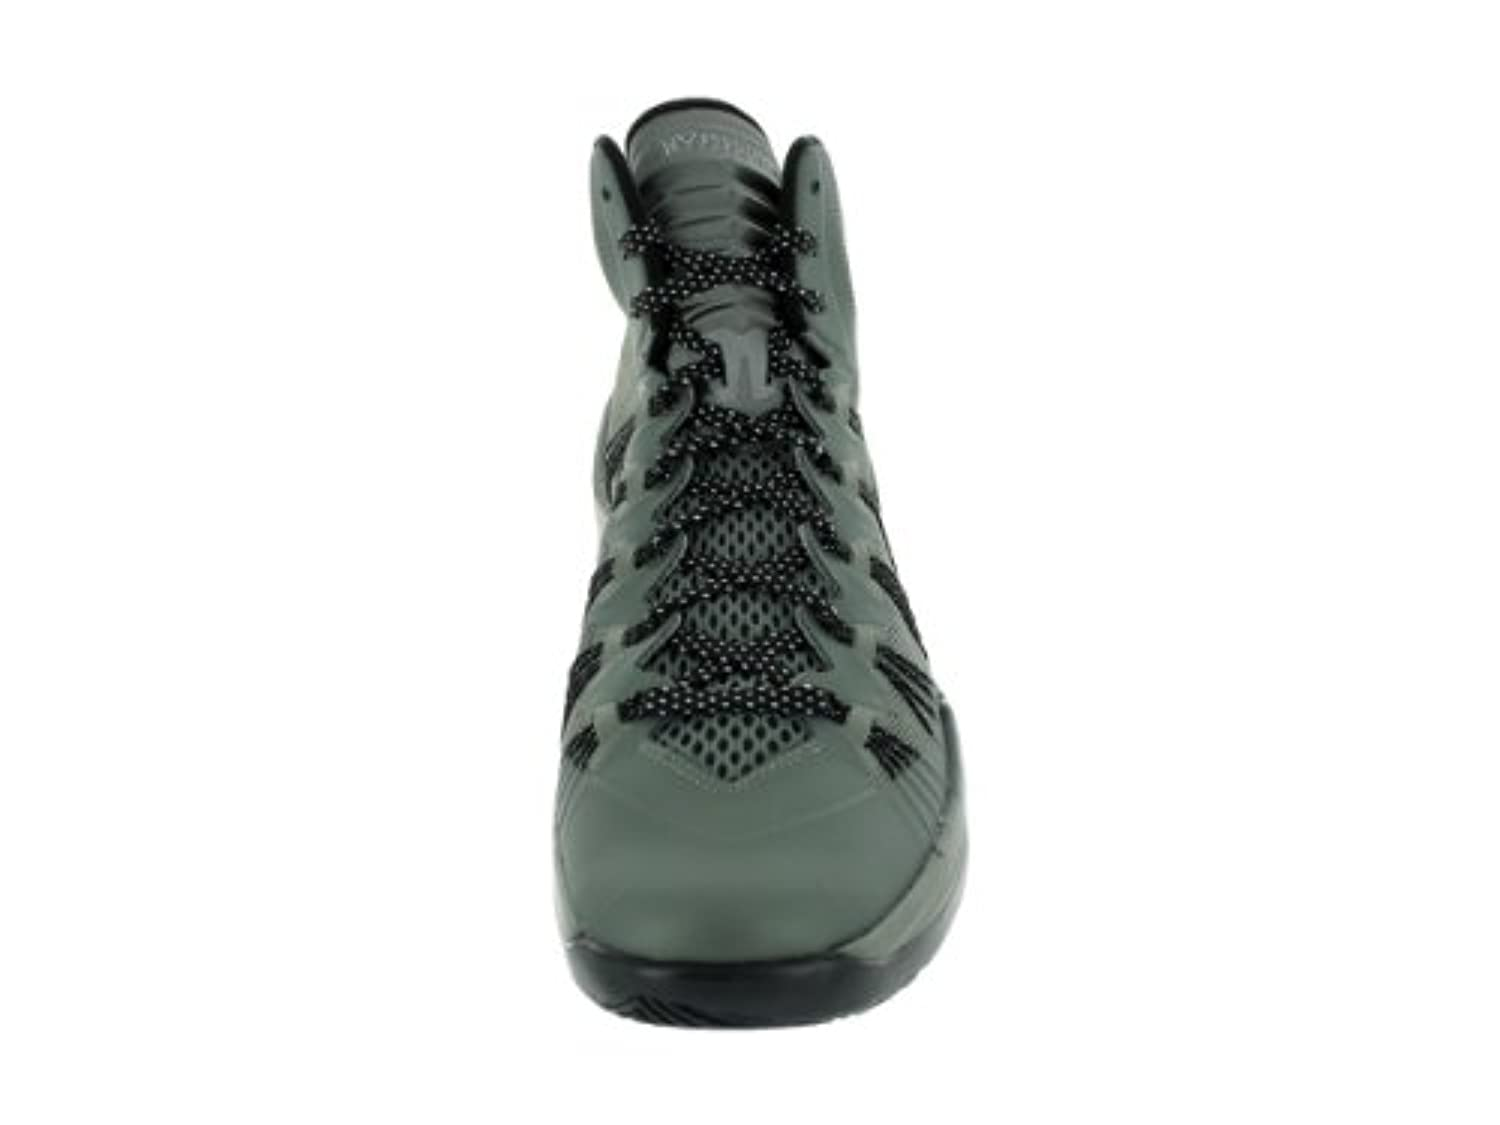 ... Nike Mens Hyperdunk 2013 Basketball Shoes Mercury Grey/Metallic  Silver/Black 599537-003 ...